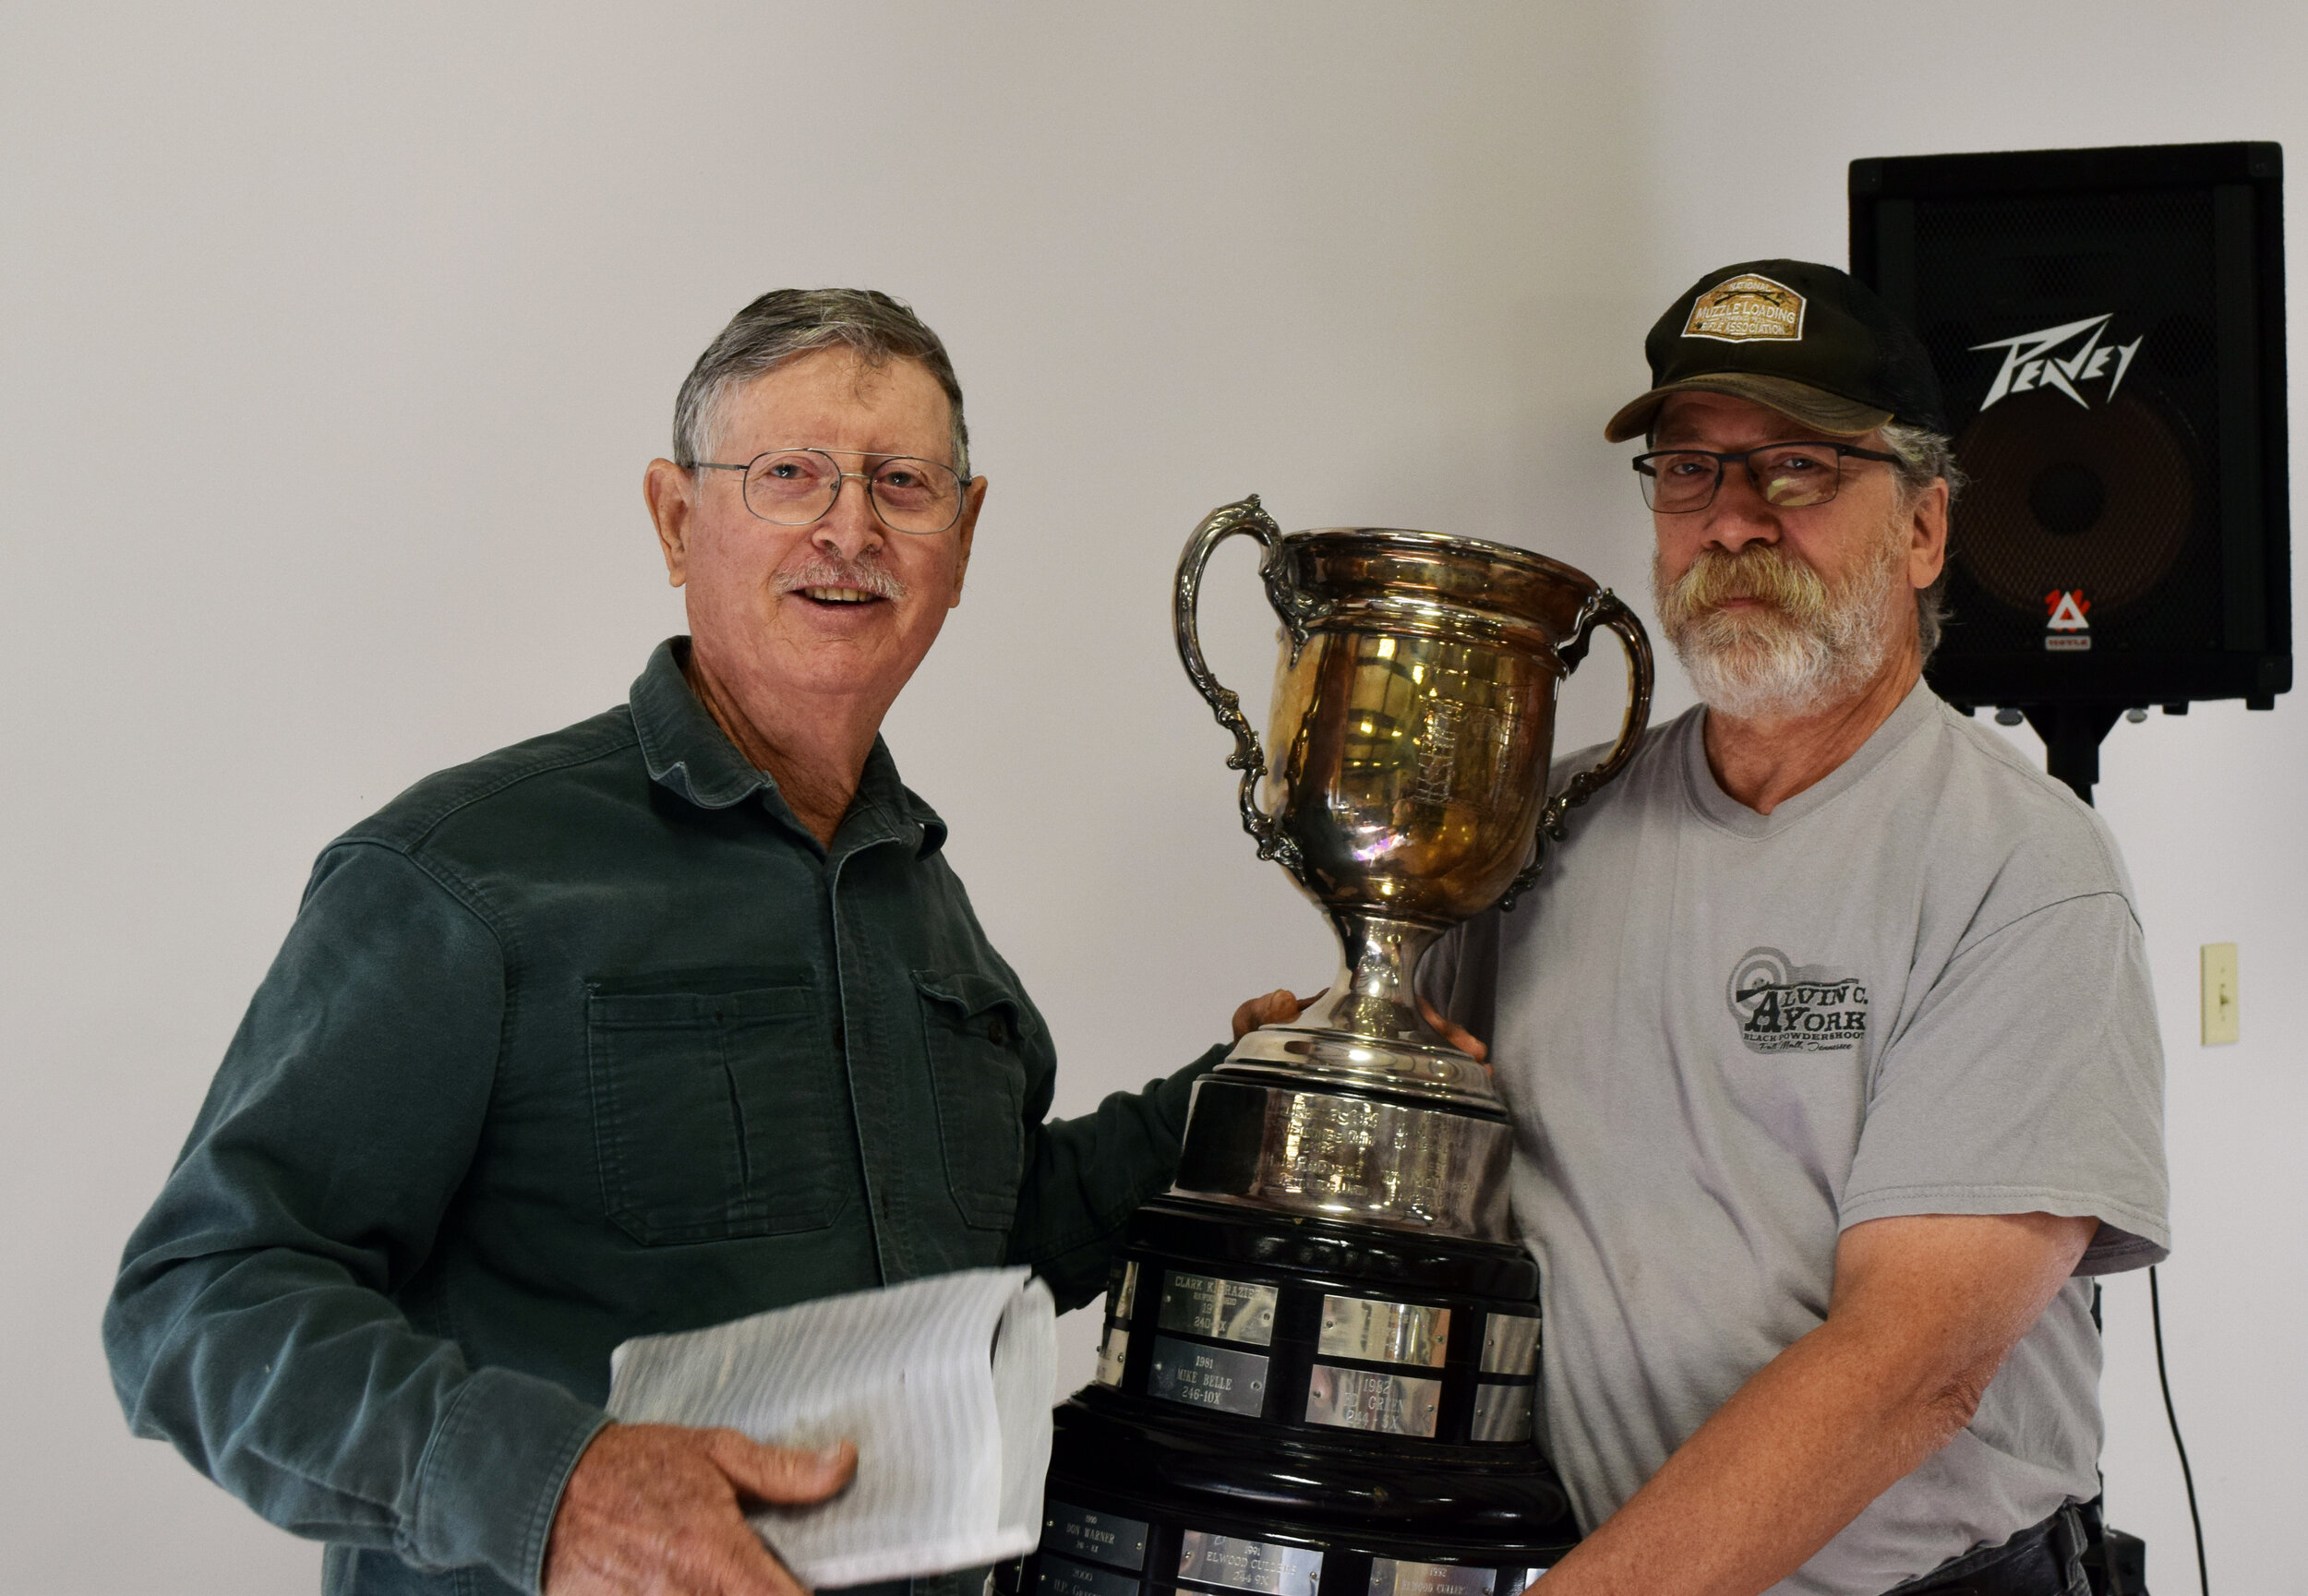 J.L. Hargis - Aggregate A - Unlimited Rifle Championship Winner with Rifle Committee Member Mark Donaldson